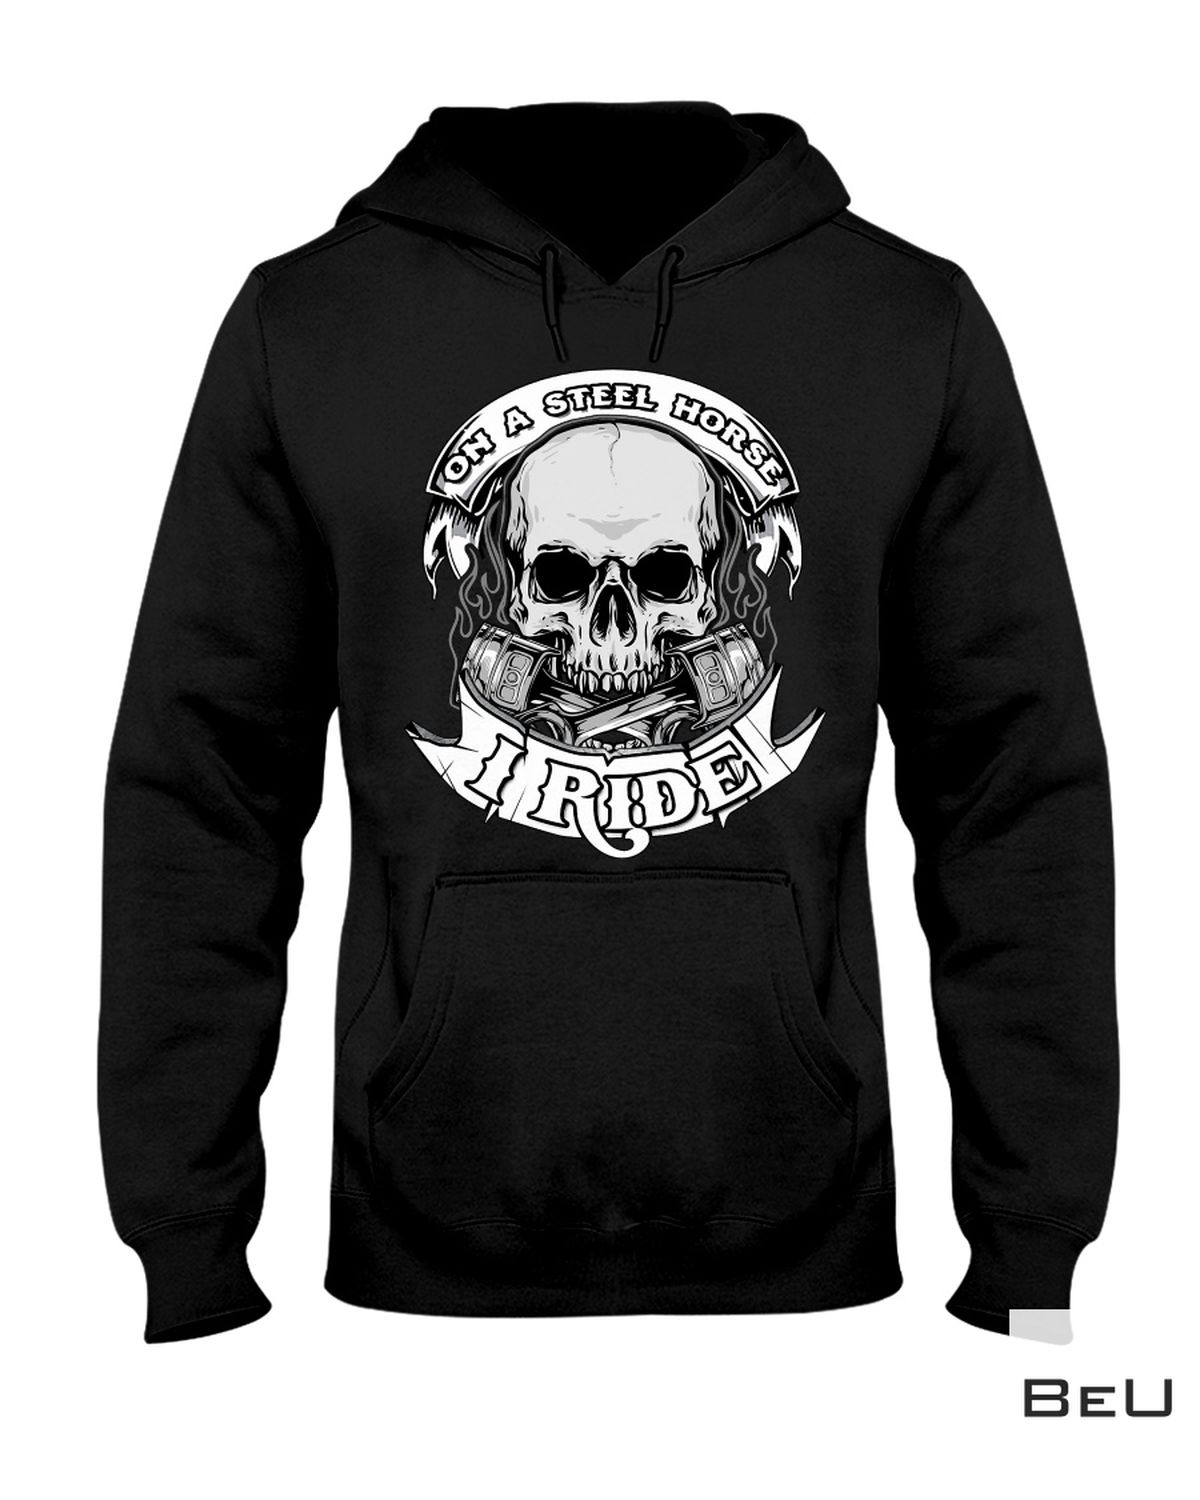 Gorgeous On A Steel Horse I Ride Skull Shirt, hoodie, tank top